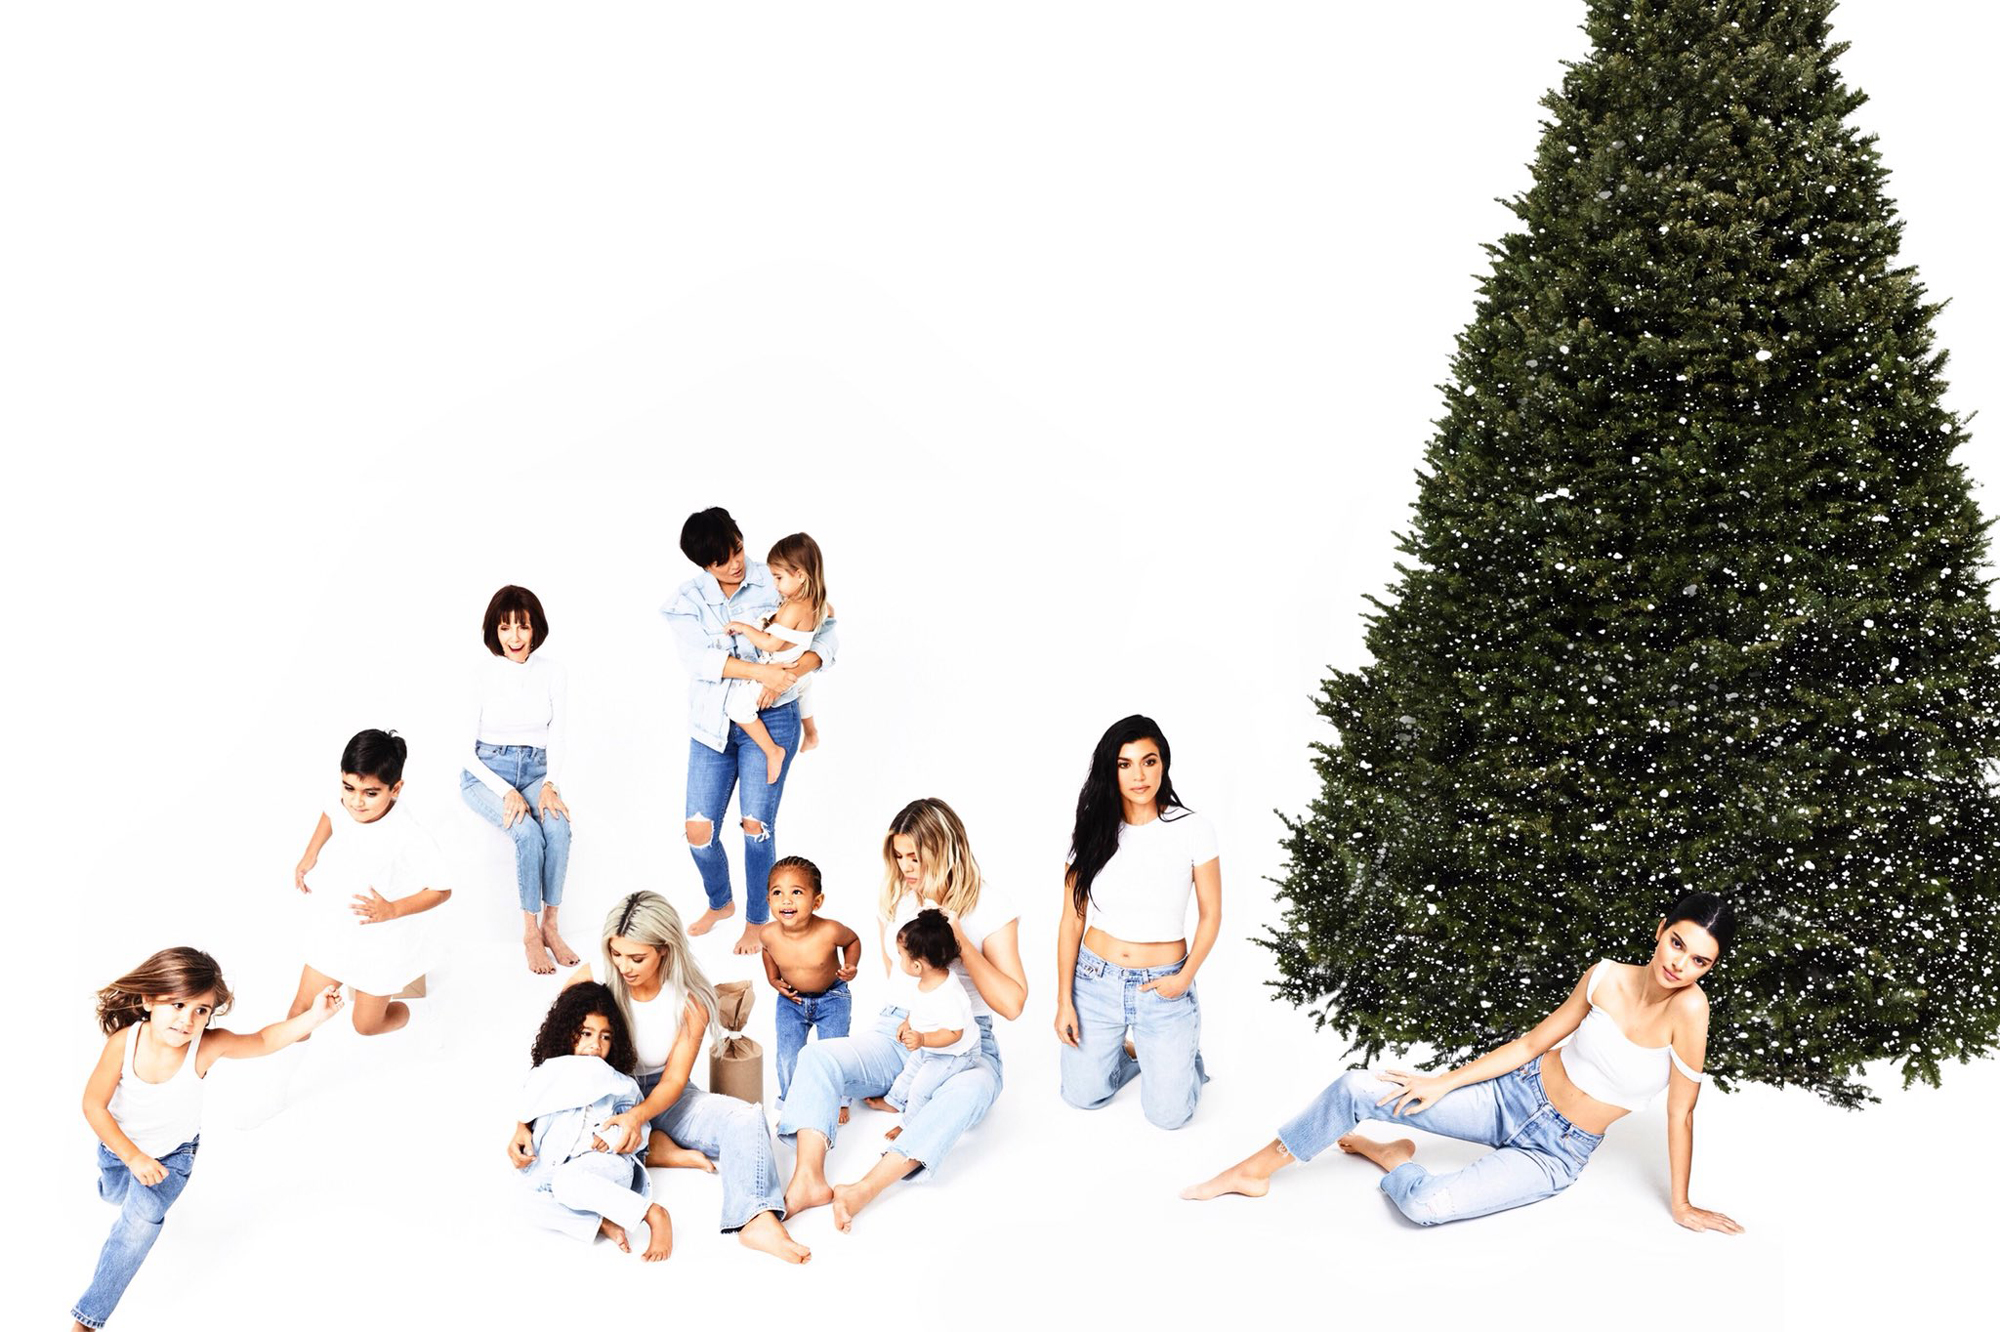 The 2018 Kardashian Christmas Card Is Officially Canceled — but with Good Reason